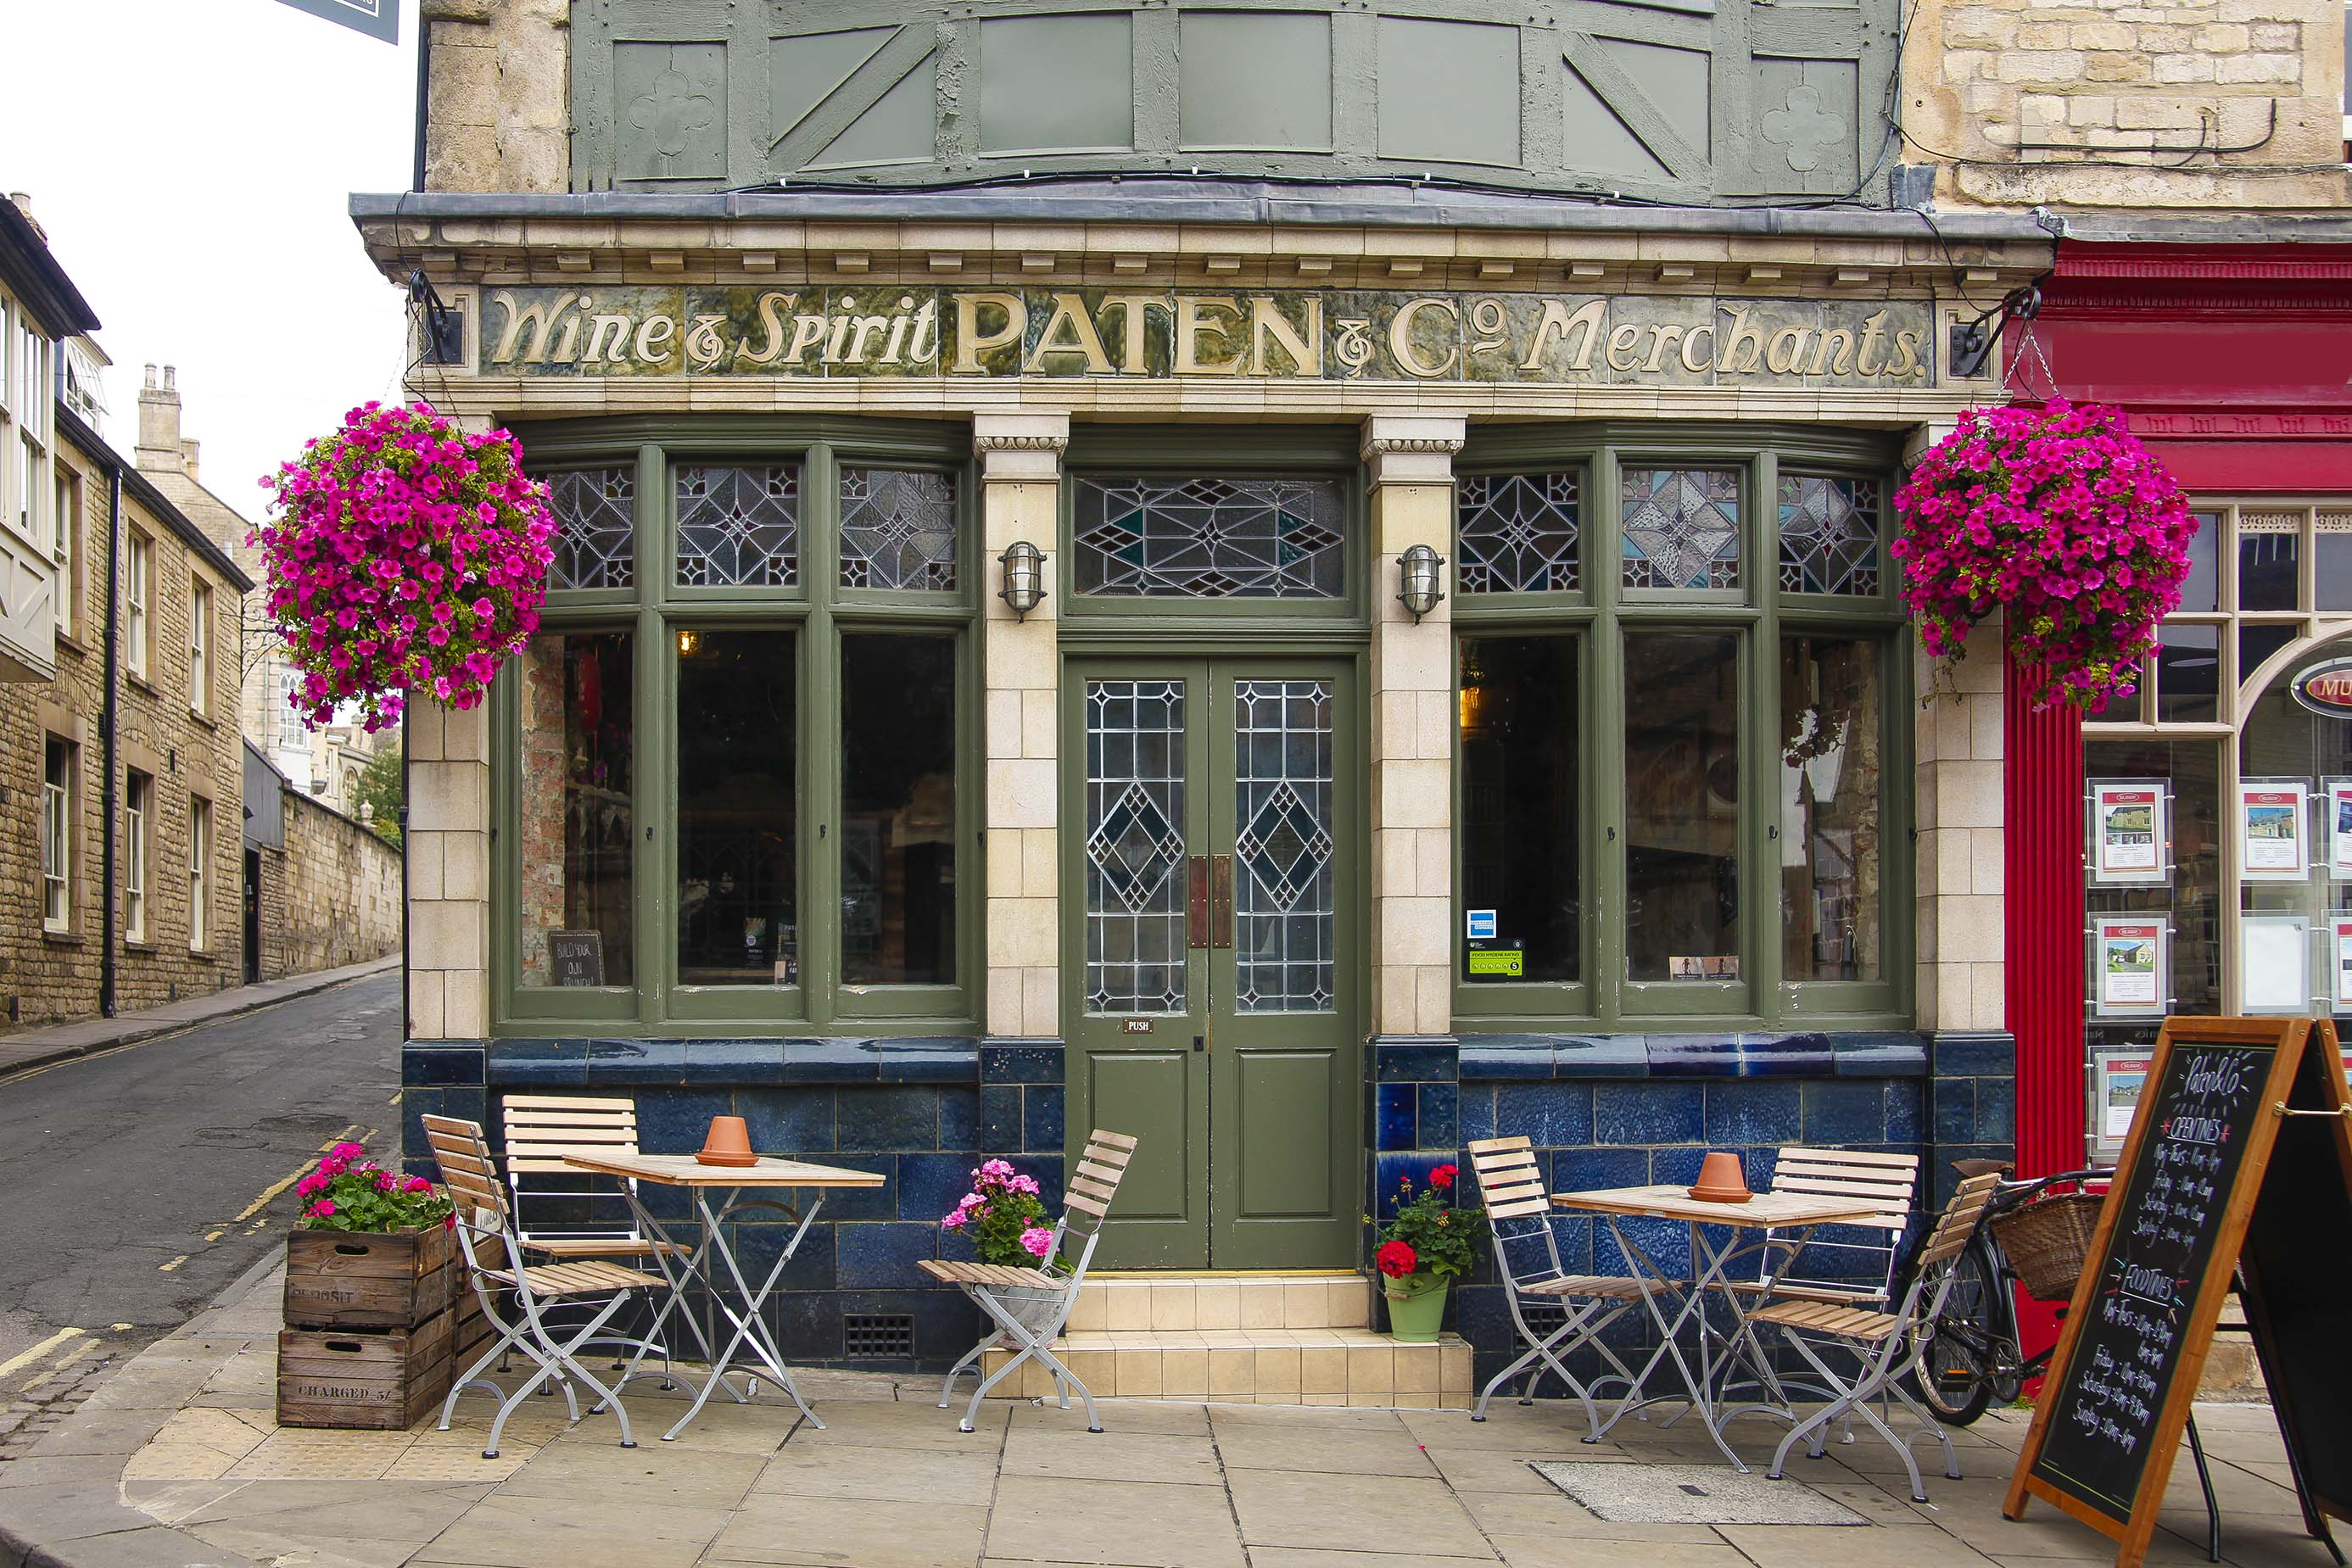 Image result for paten and co stamford